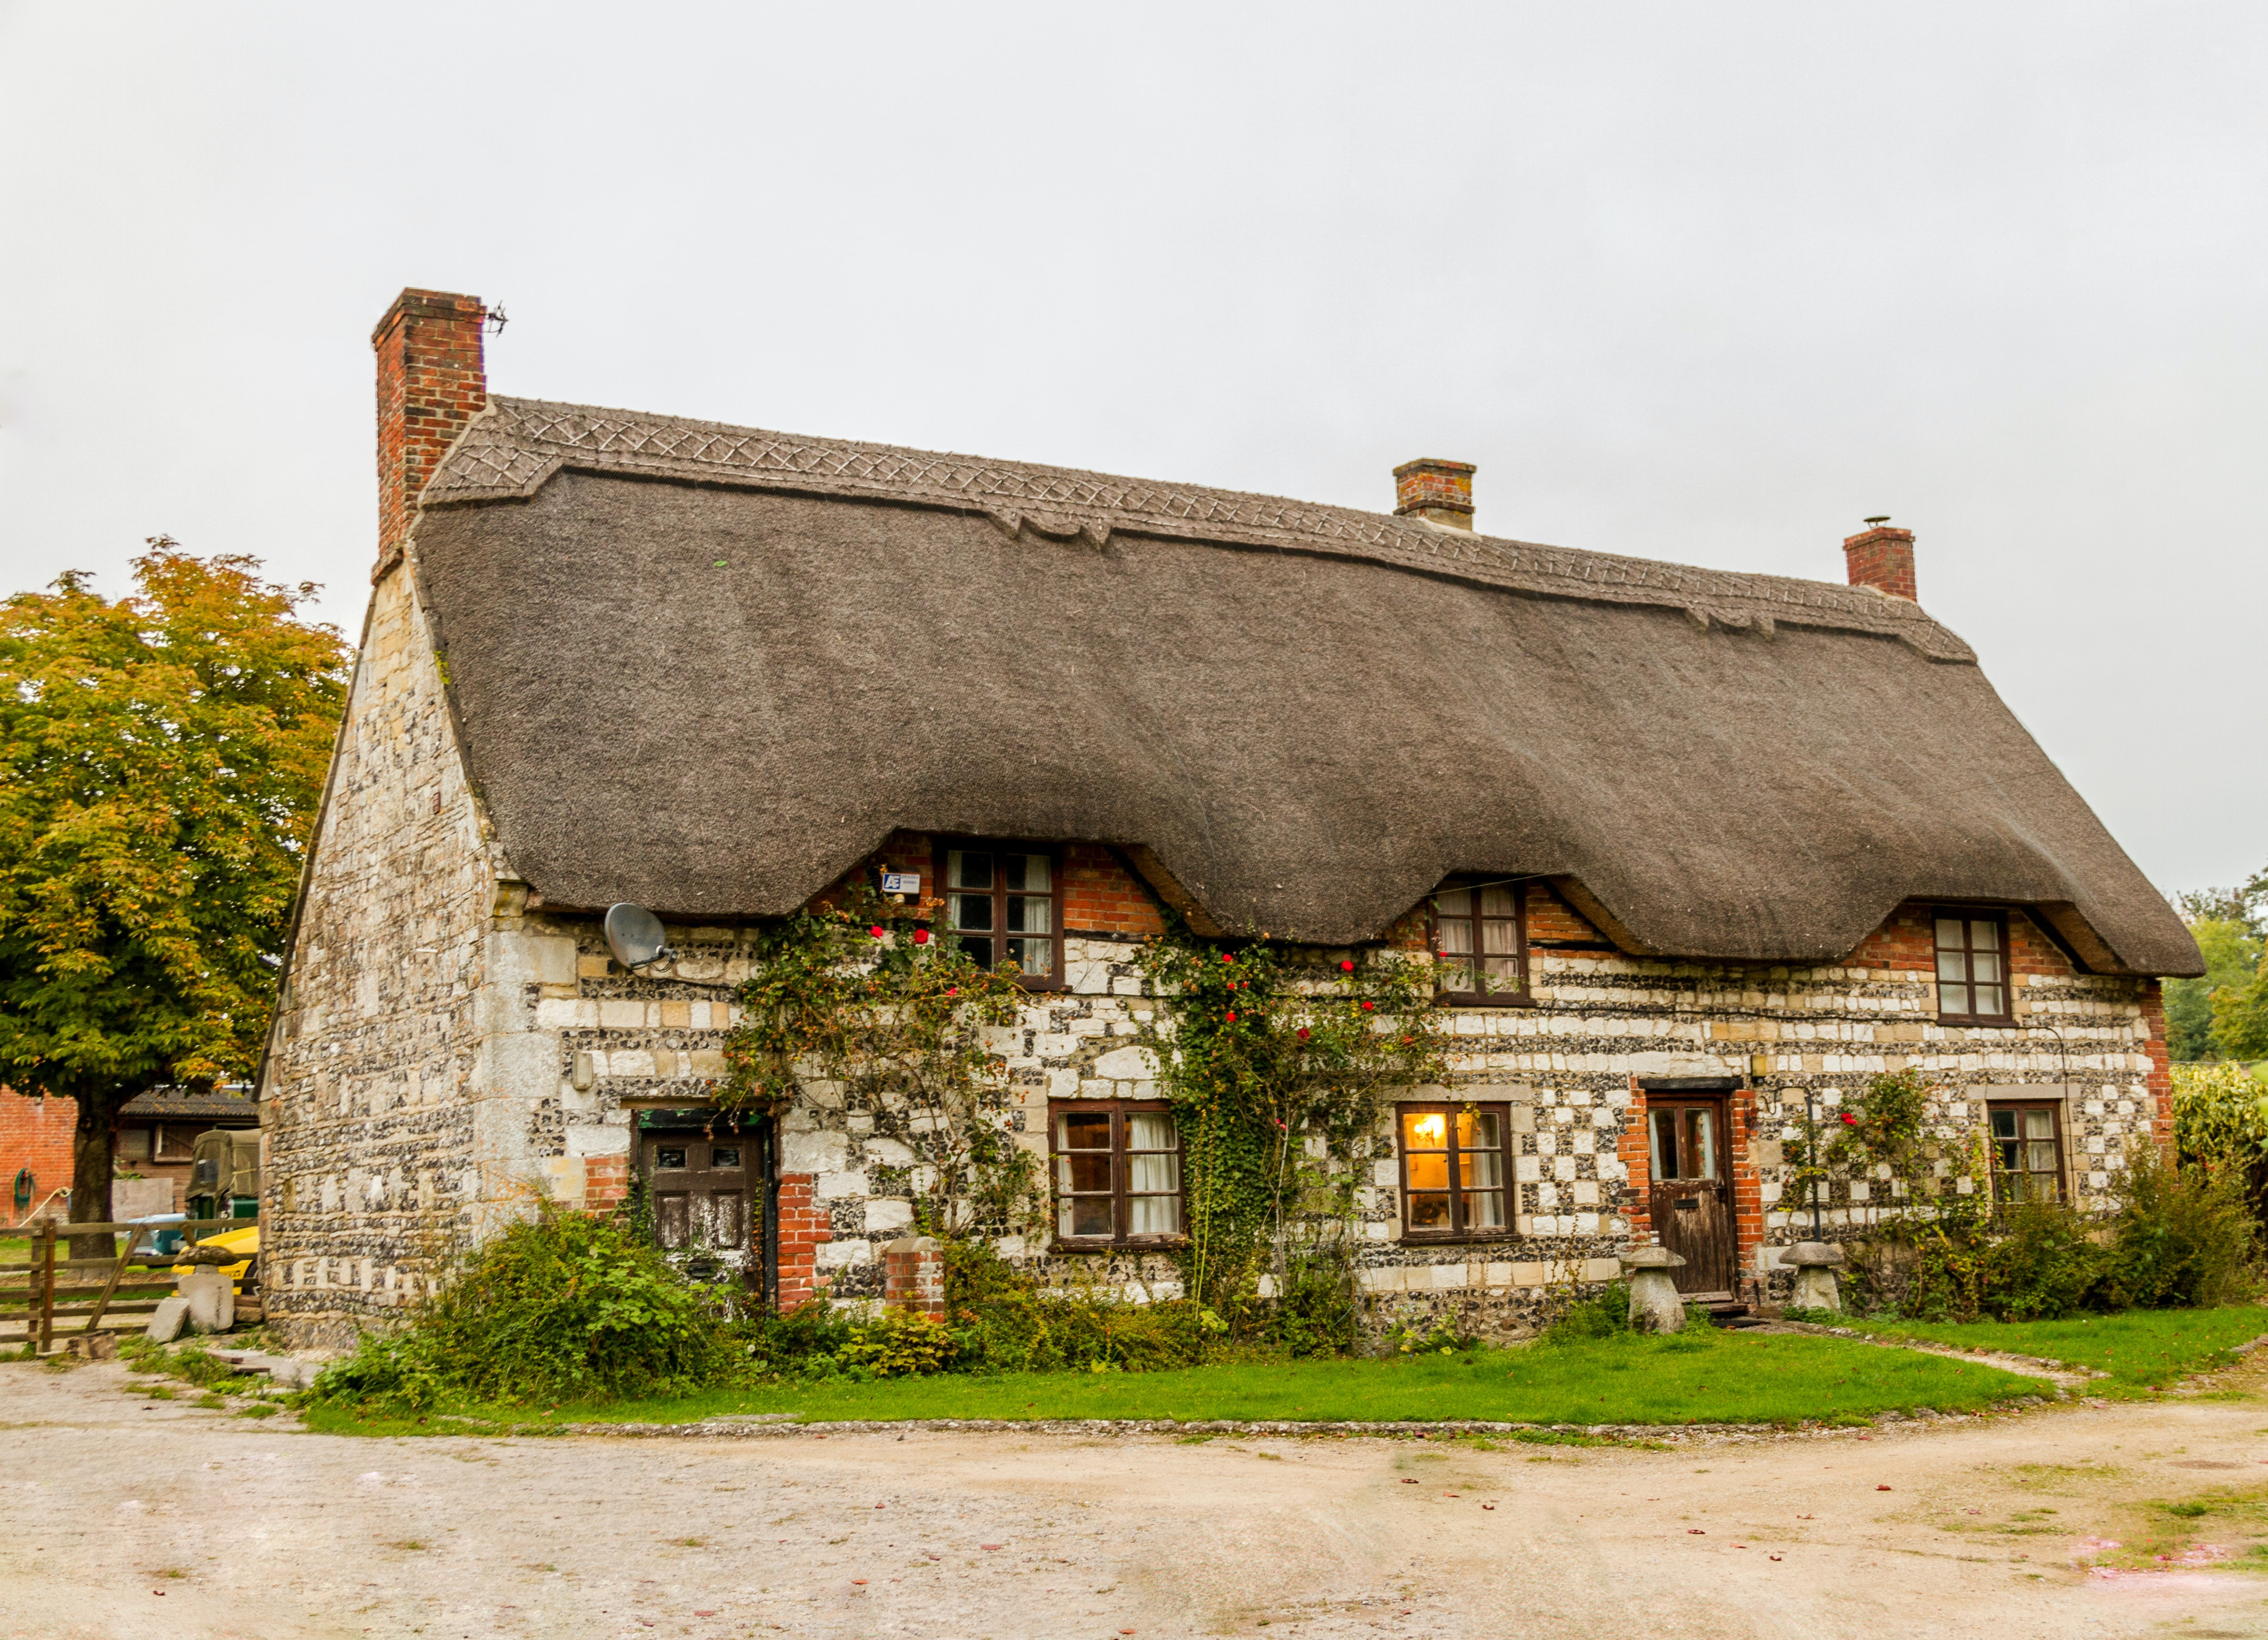 Cozy country cottage with thatched roof in England